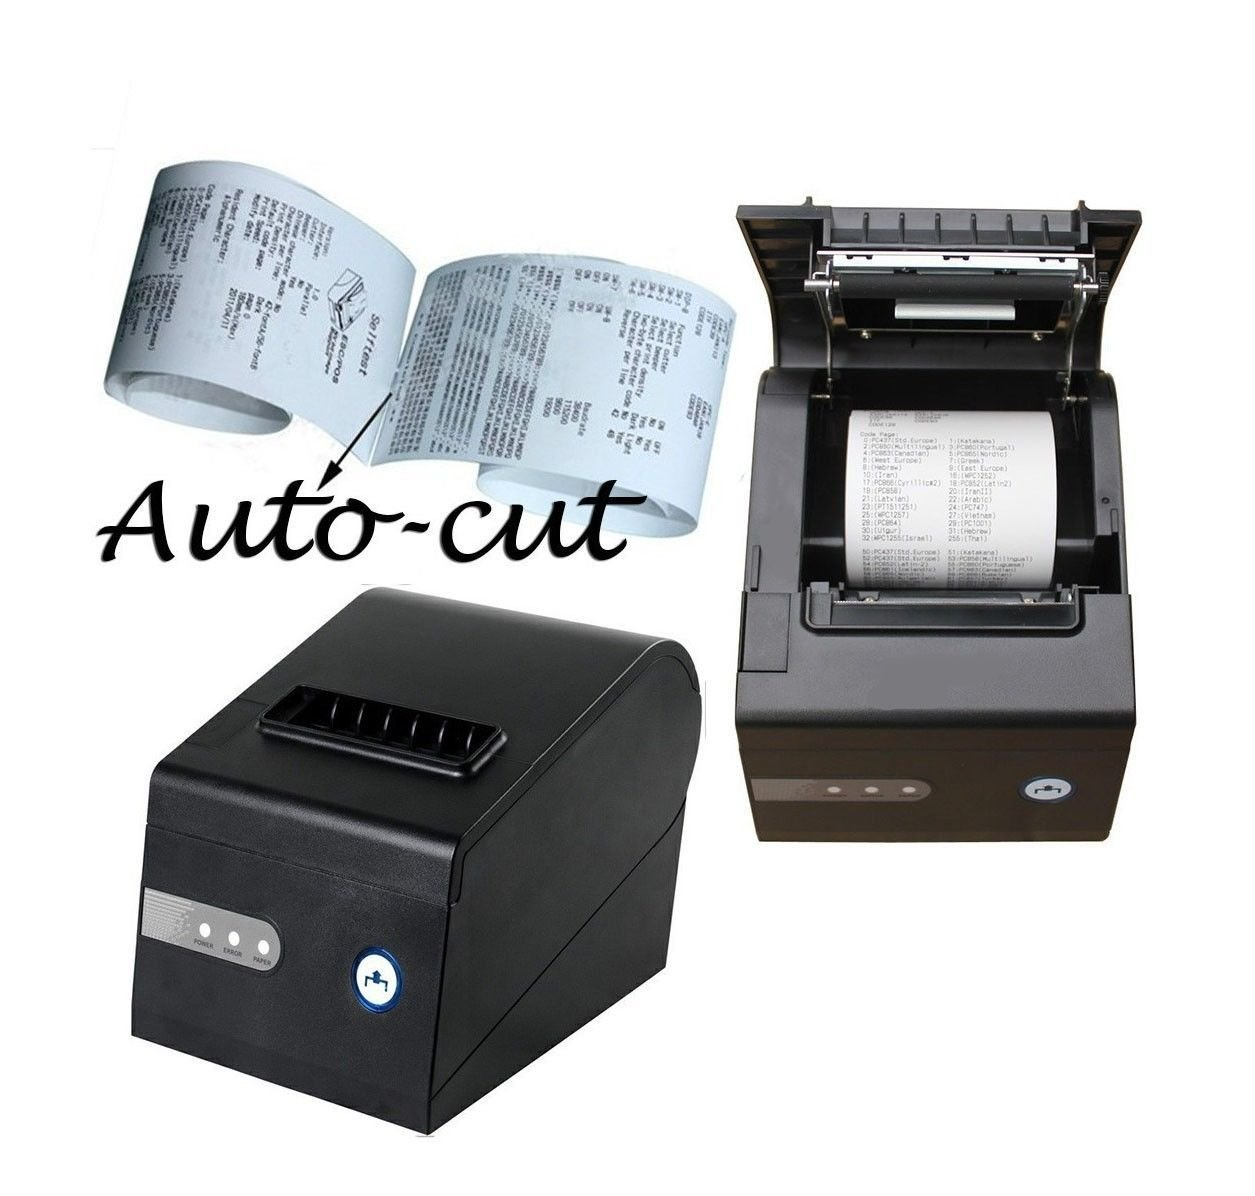 "2xhome 80mm Thermal Receipt Printer USB Auto Cutting Cut Autocut Cash Register Cashier POS Small Business Kitchen 3 1/8 "" Inch 80 mm Line Dot Print Windows Window 7 XP VISTA"